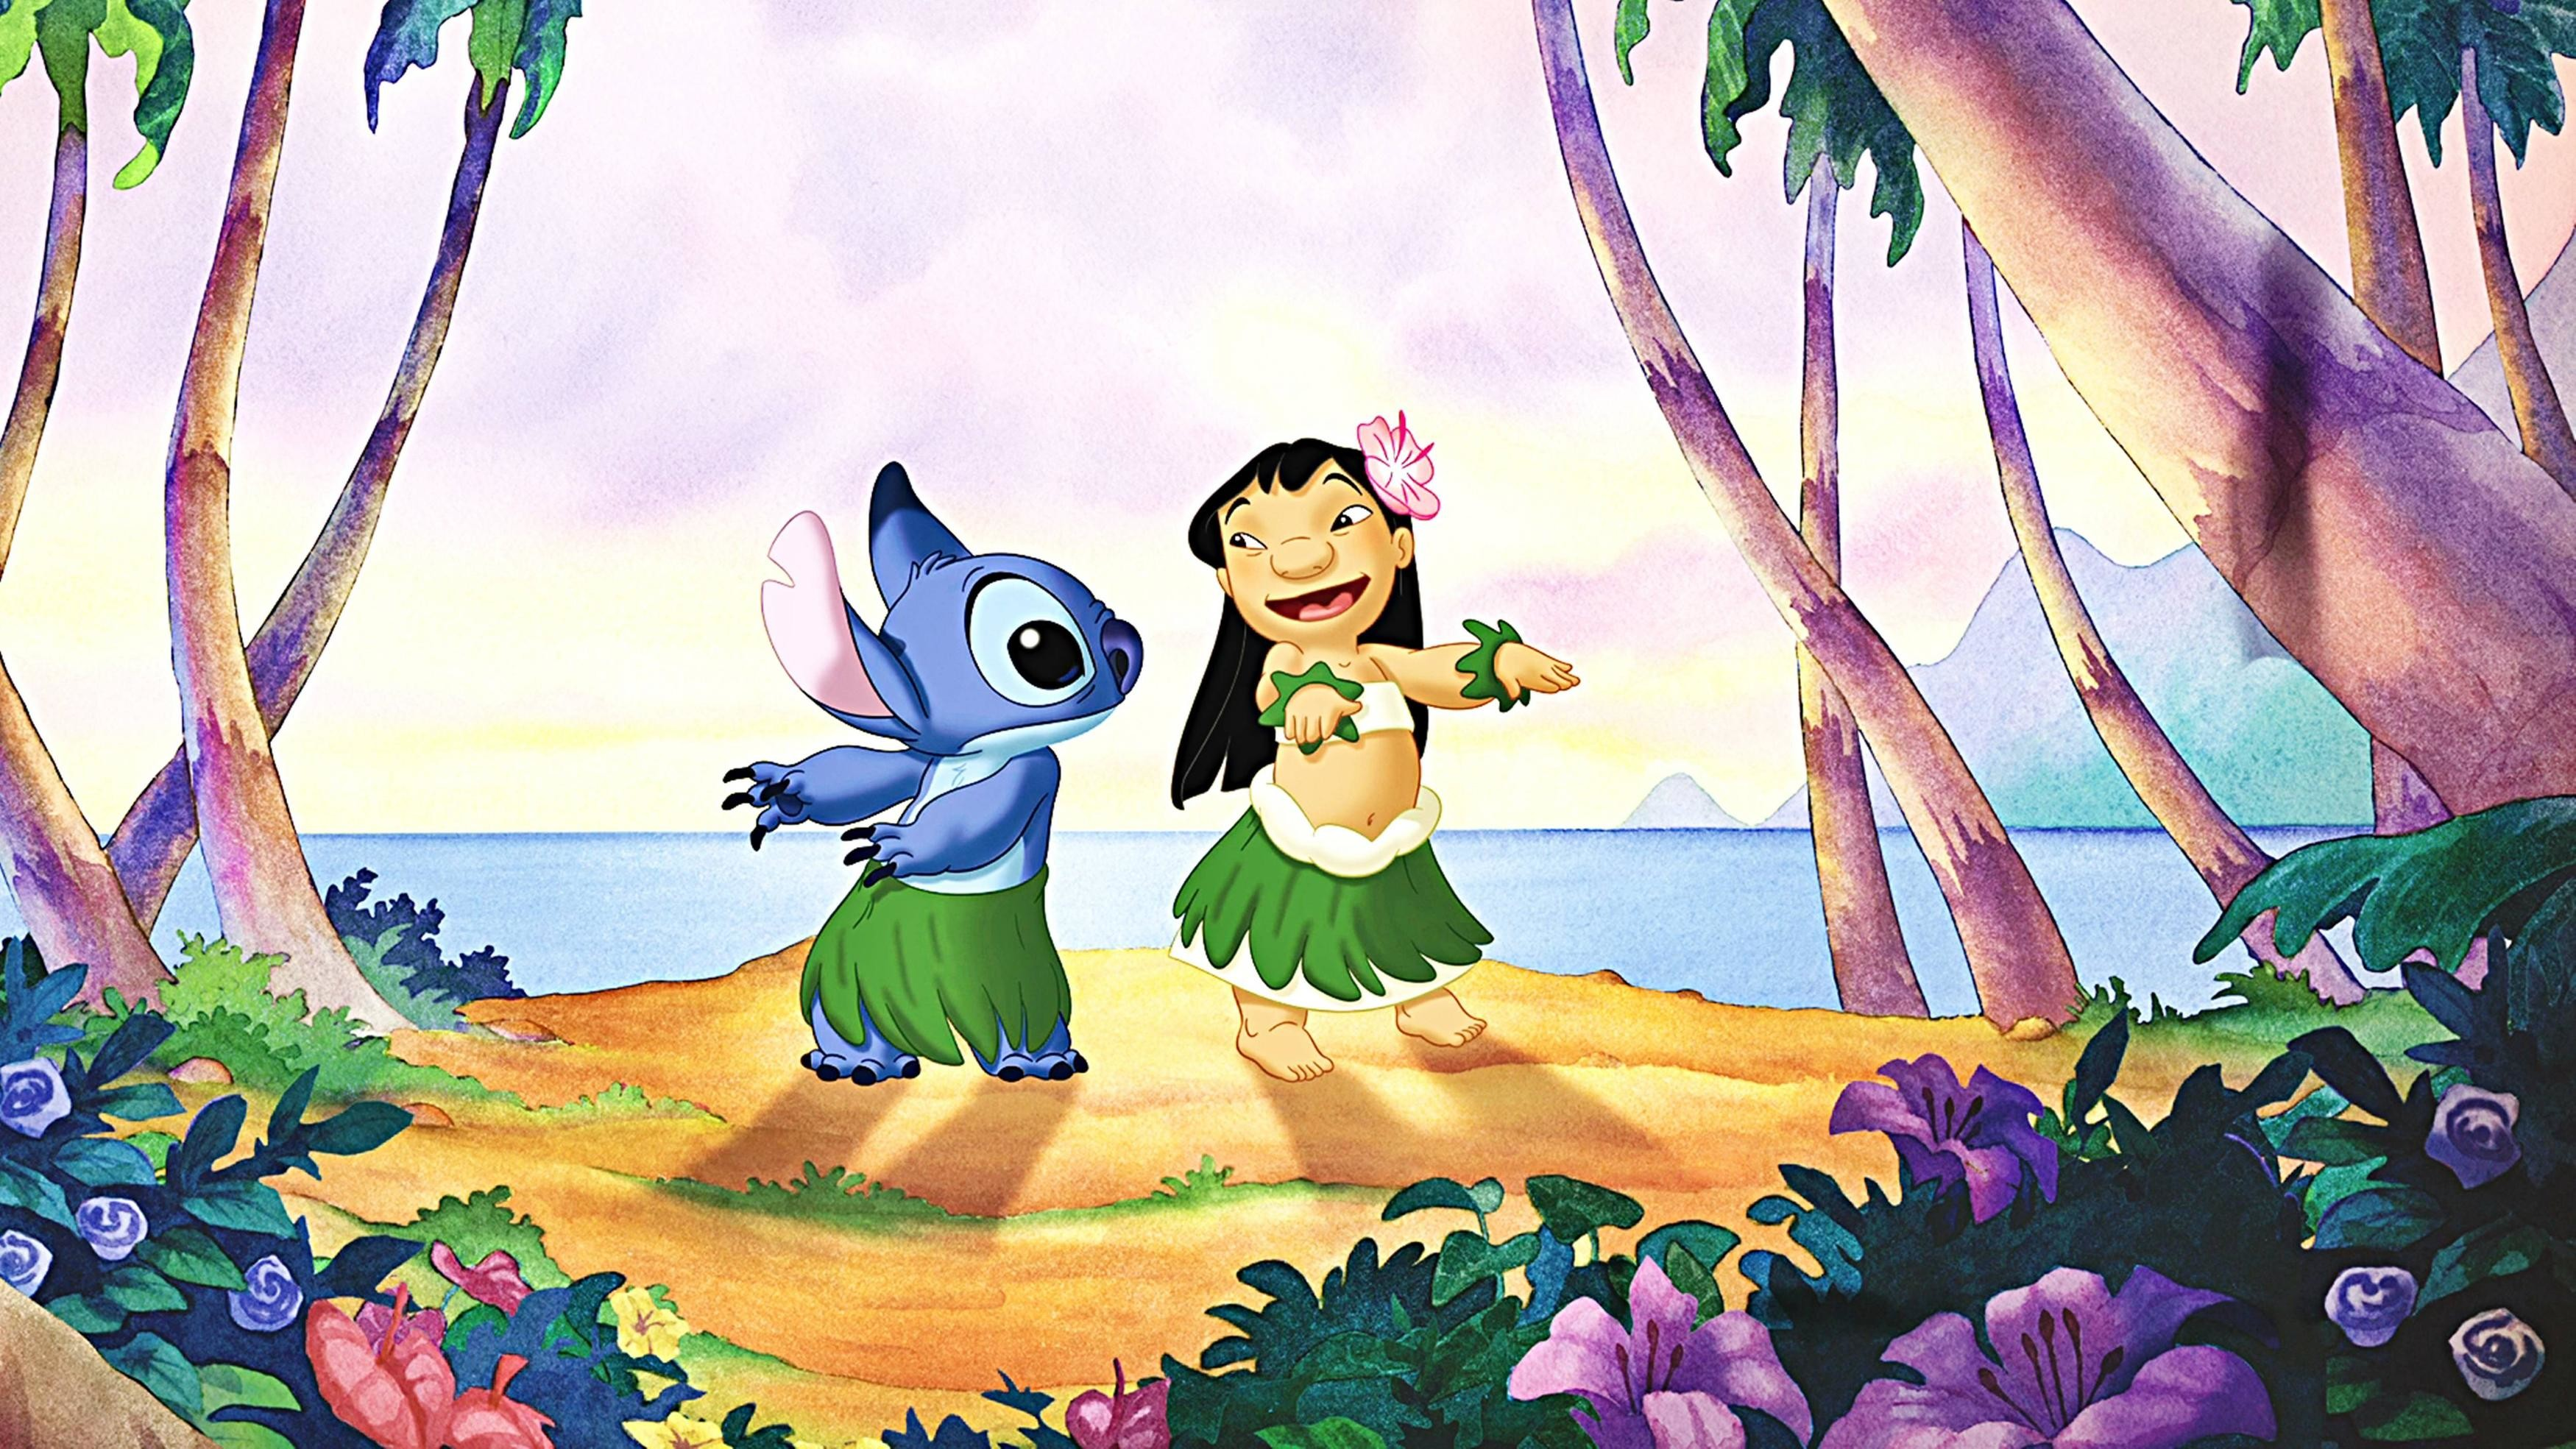 1080x1920 Lilo Stitch IPhone Wallpaper In All Its Glory You Can Find More Disney